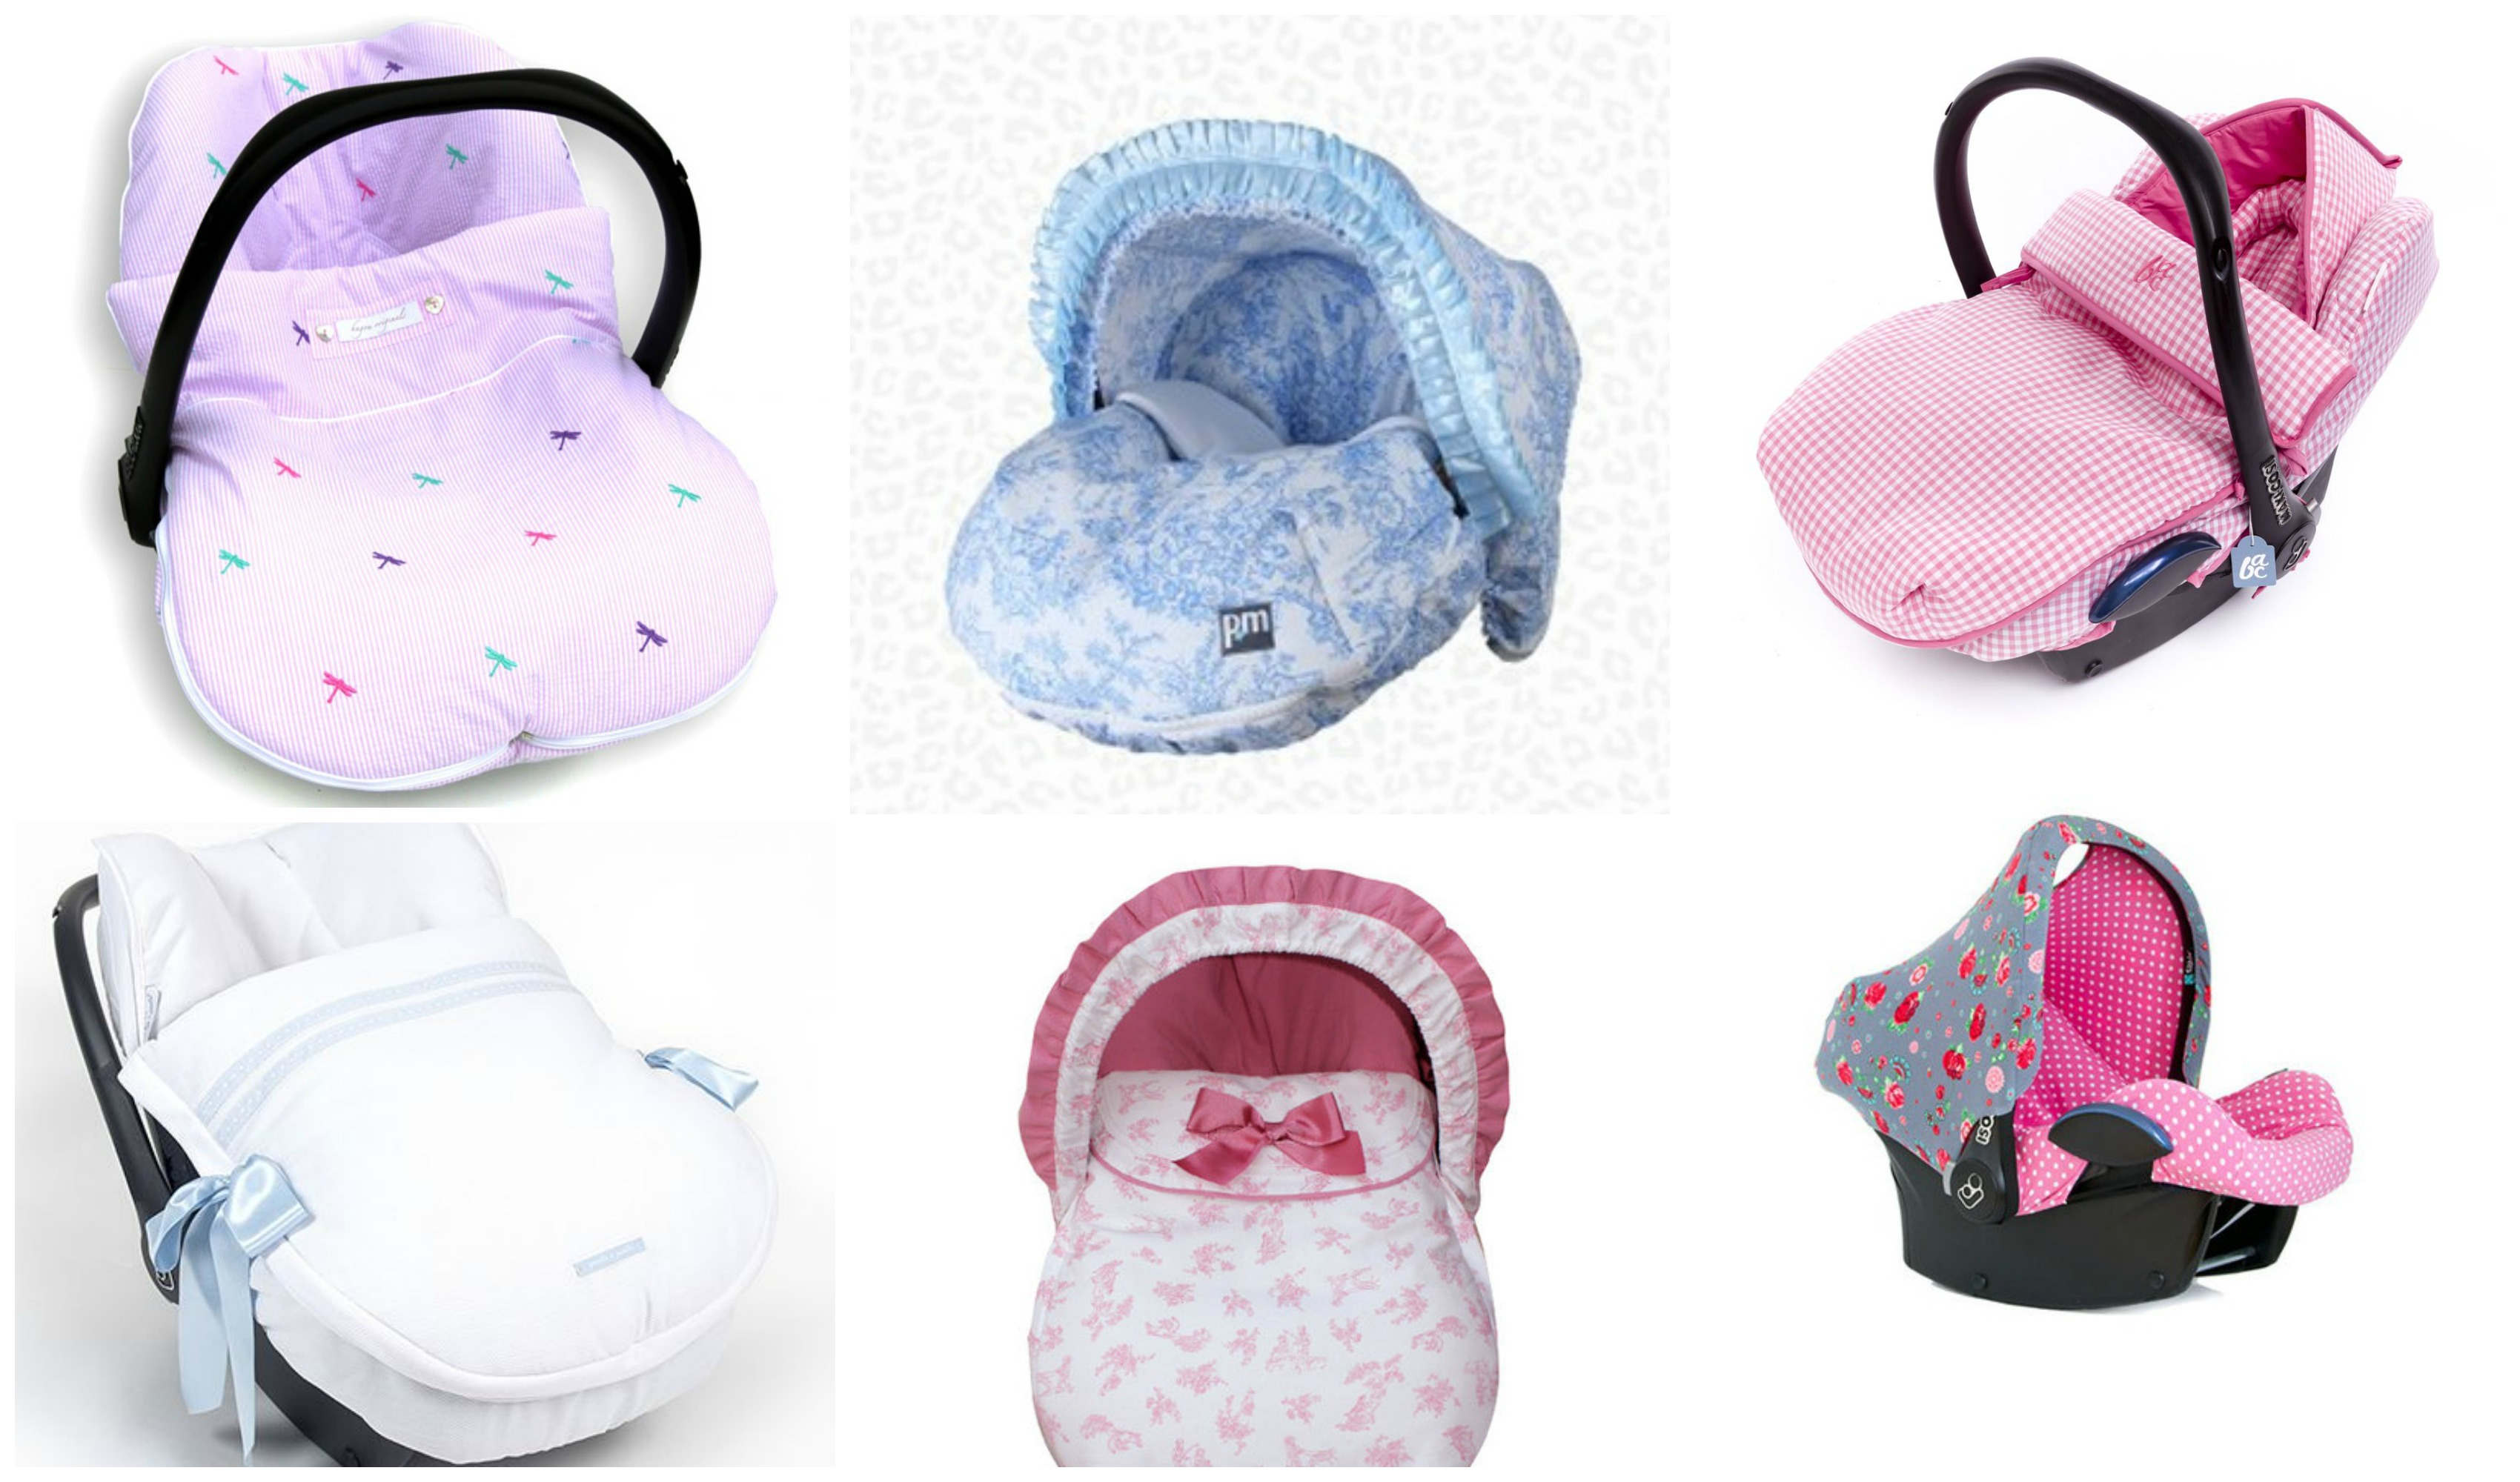 Autostoel-hoes-voor-Maxi-Cosi-bekleding-voor-Maxi-Cosi-Little-Mack-Sibble-ColorCap-Baby-Anne-Cy-House-of-Jamie-Hagou-Originals-Dreamcovers